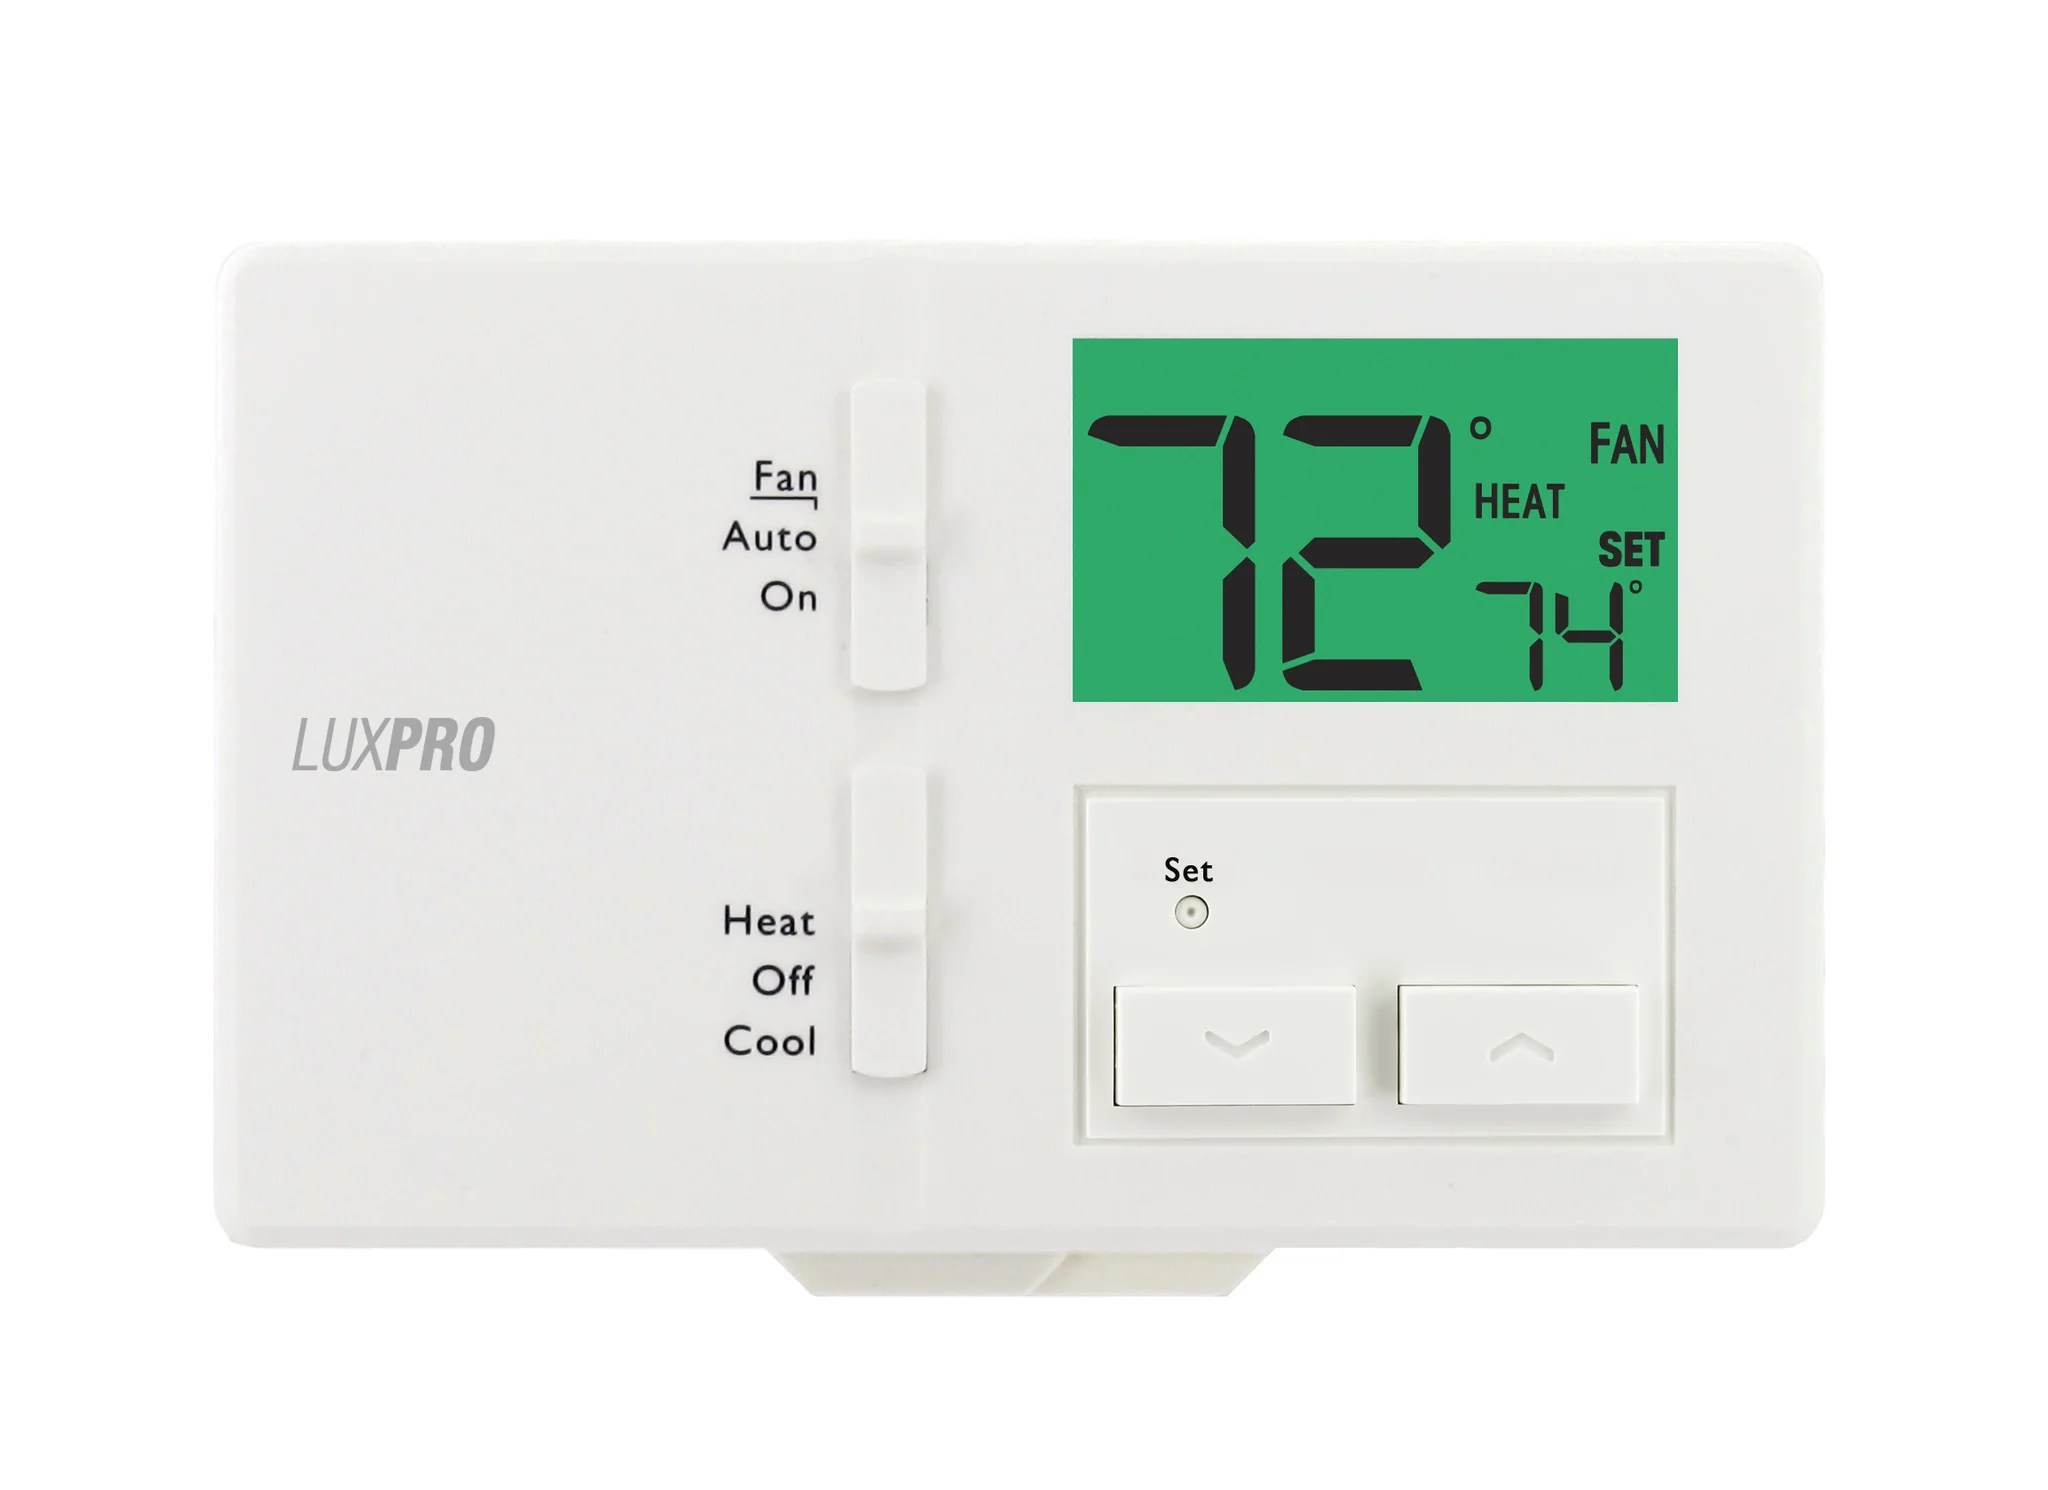 medium resolution of luxpro thermostat 2wire wiring diagram example electrical wiring 3m thermostat diagram luxpro p111 non programmable thermostat